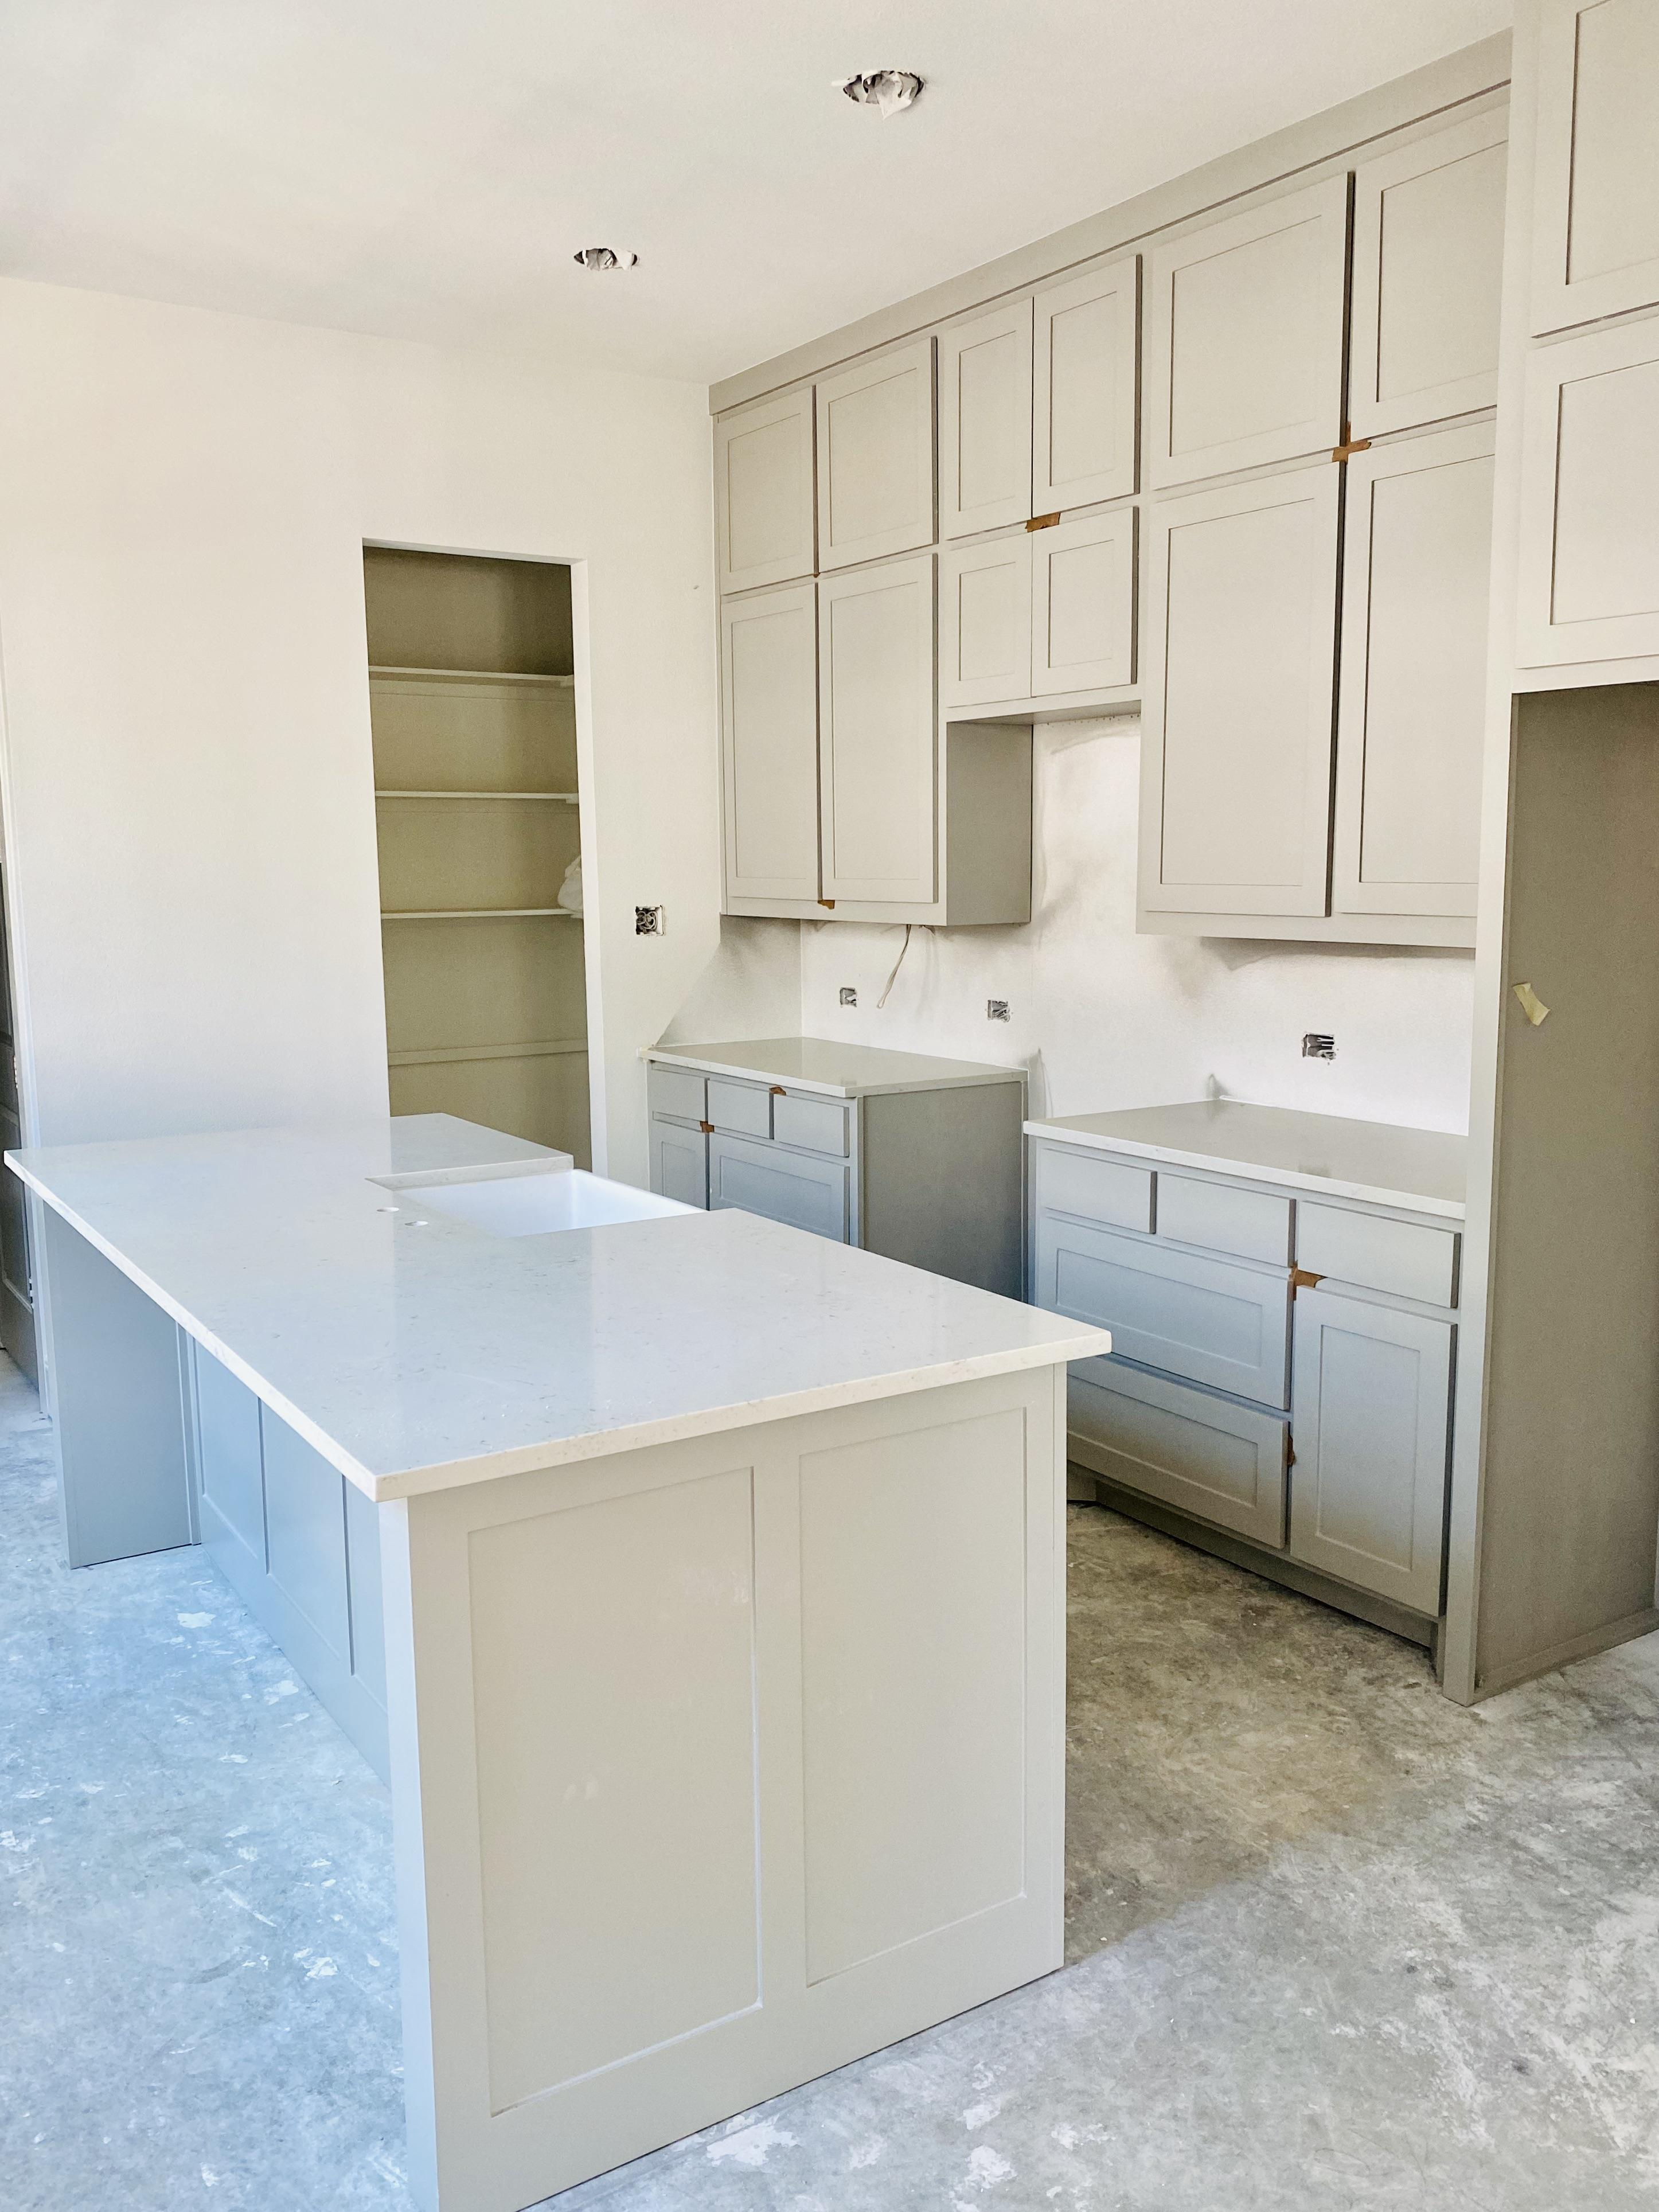 Kitchen featured in the Townhome By Hedgefield in Fort Worth, TX